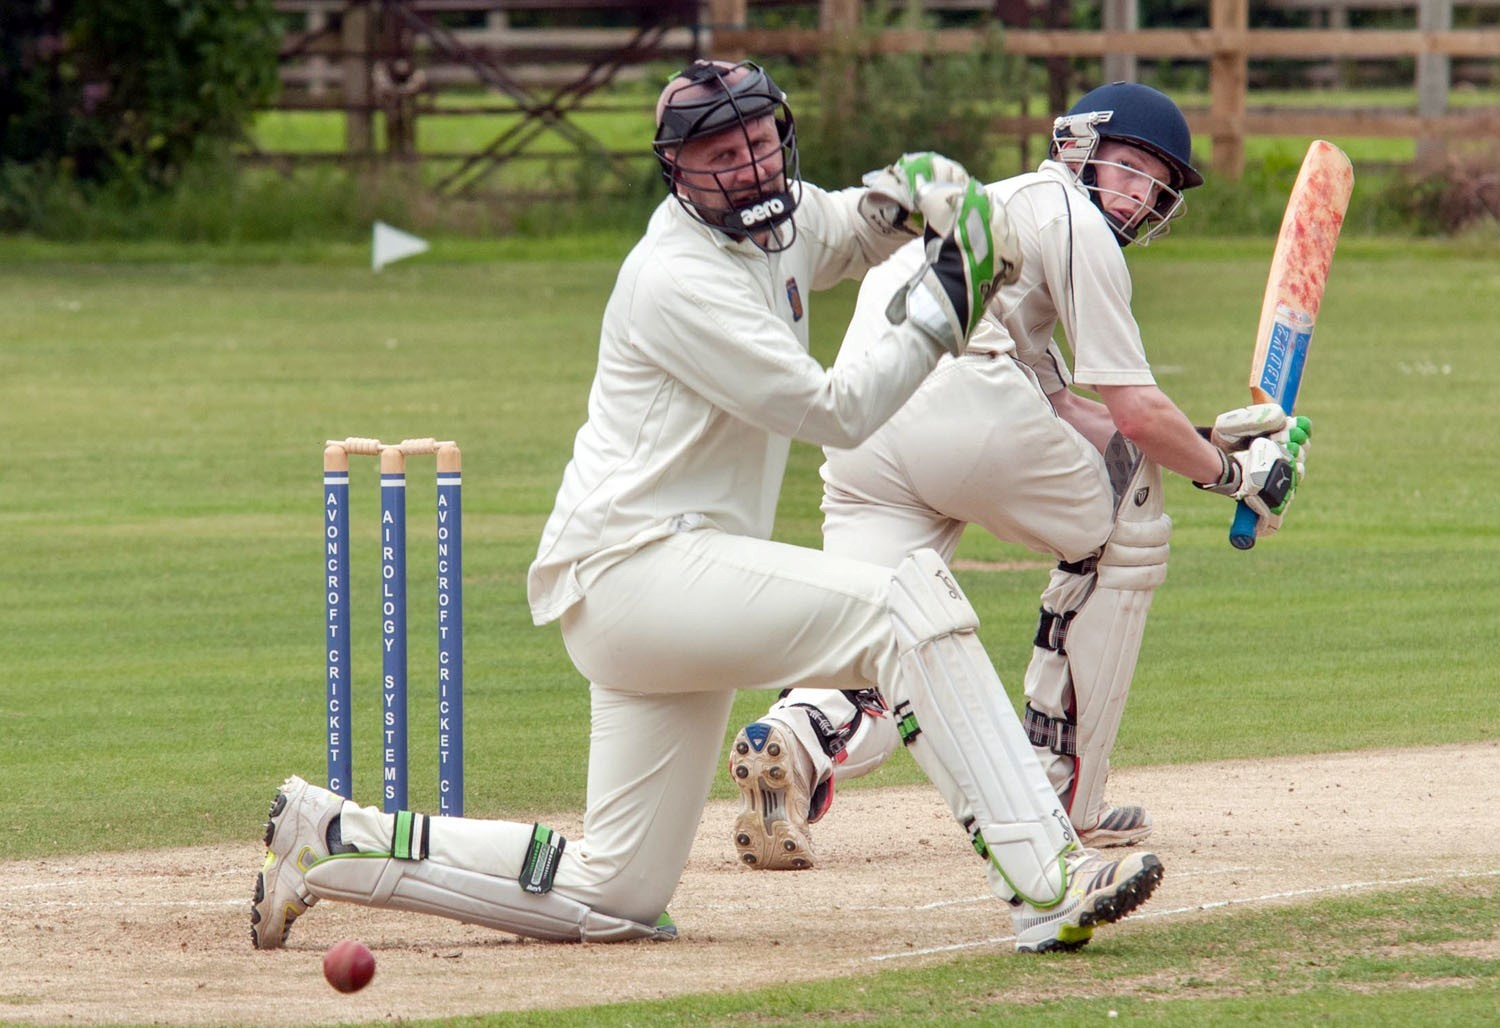 BMH291405c Avoncroft v Stourport: Will Sach batting for Stourport  (8225037)